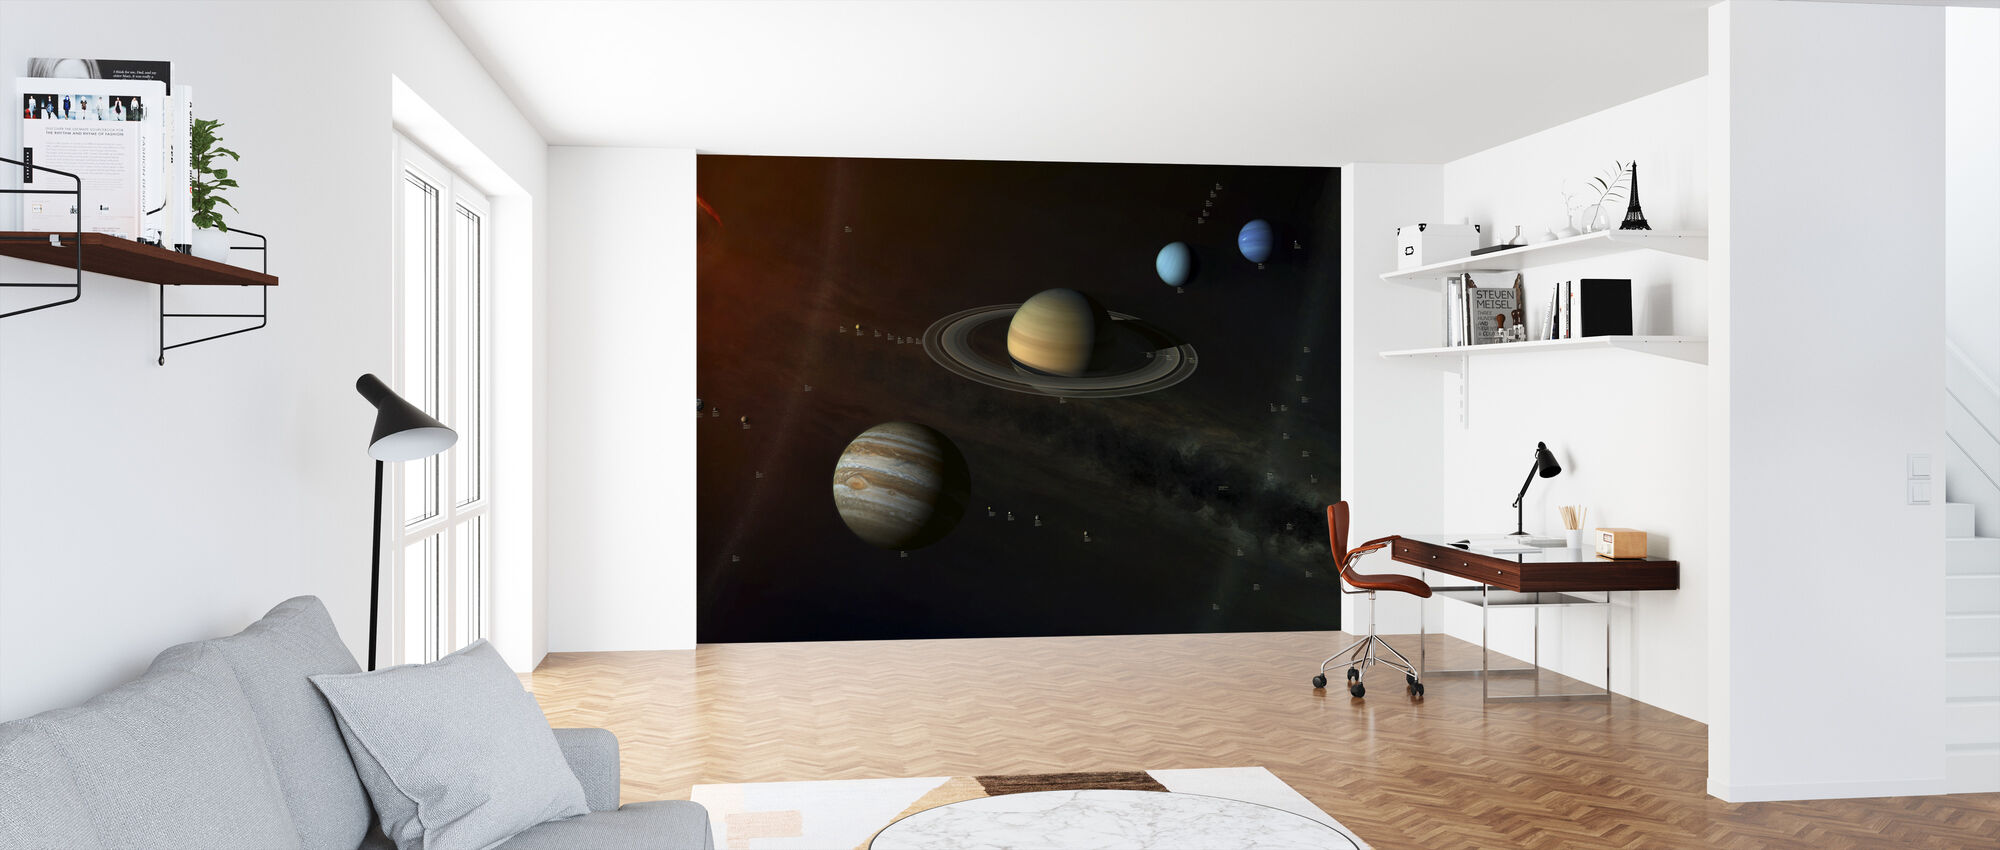 Solar System - With info labels - Wallpaper - Office